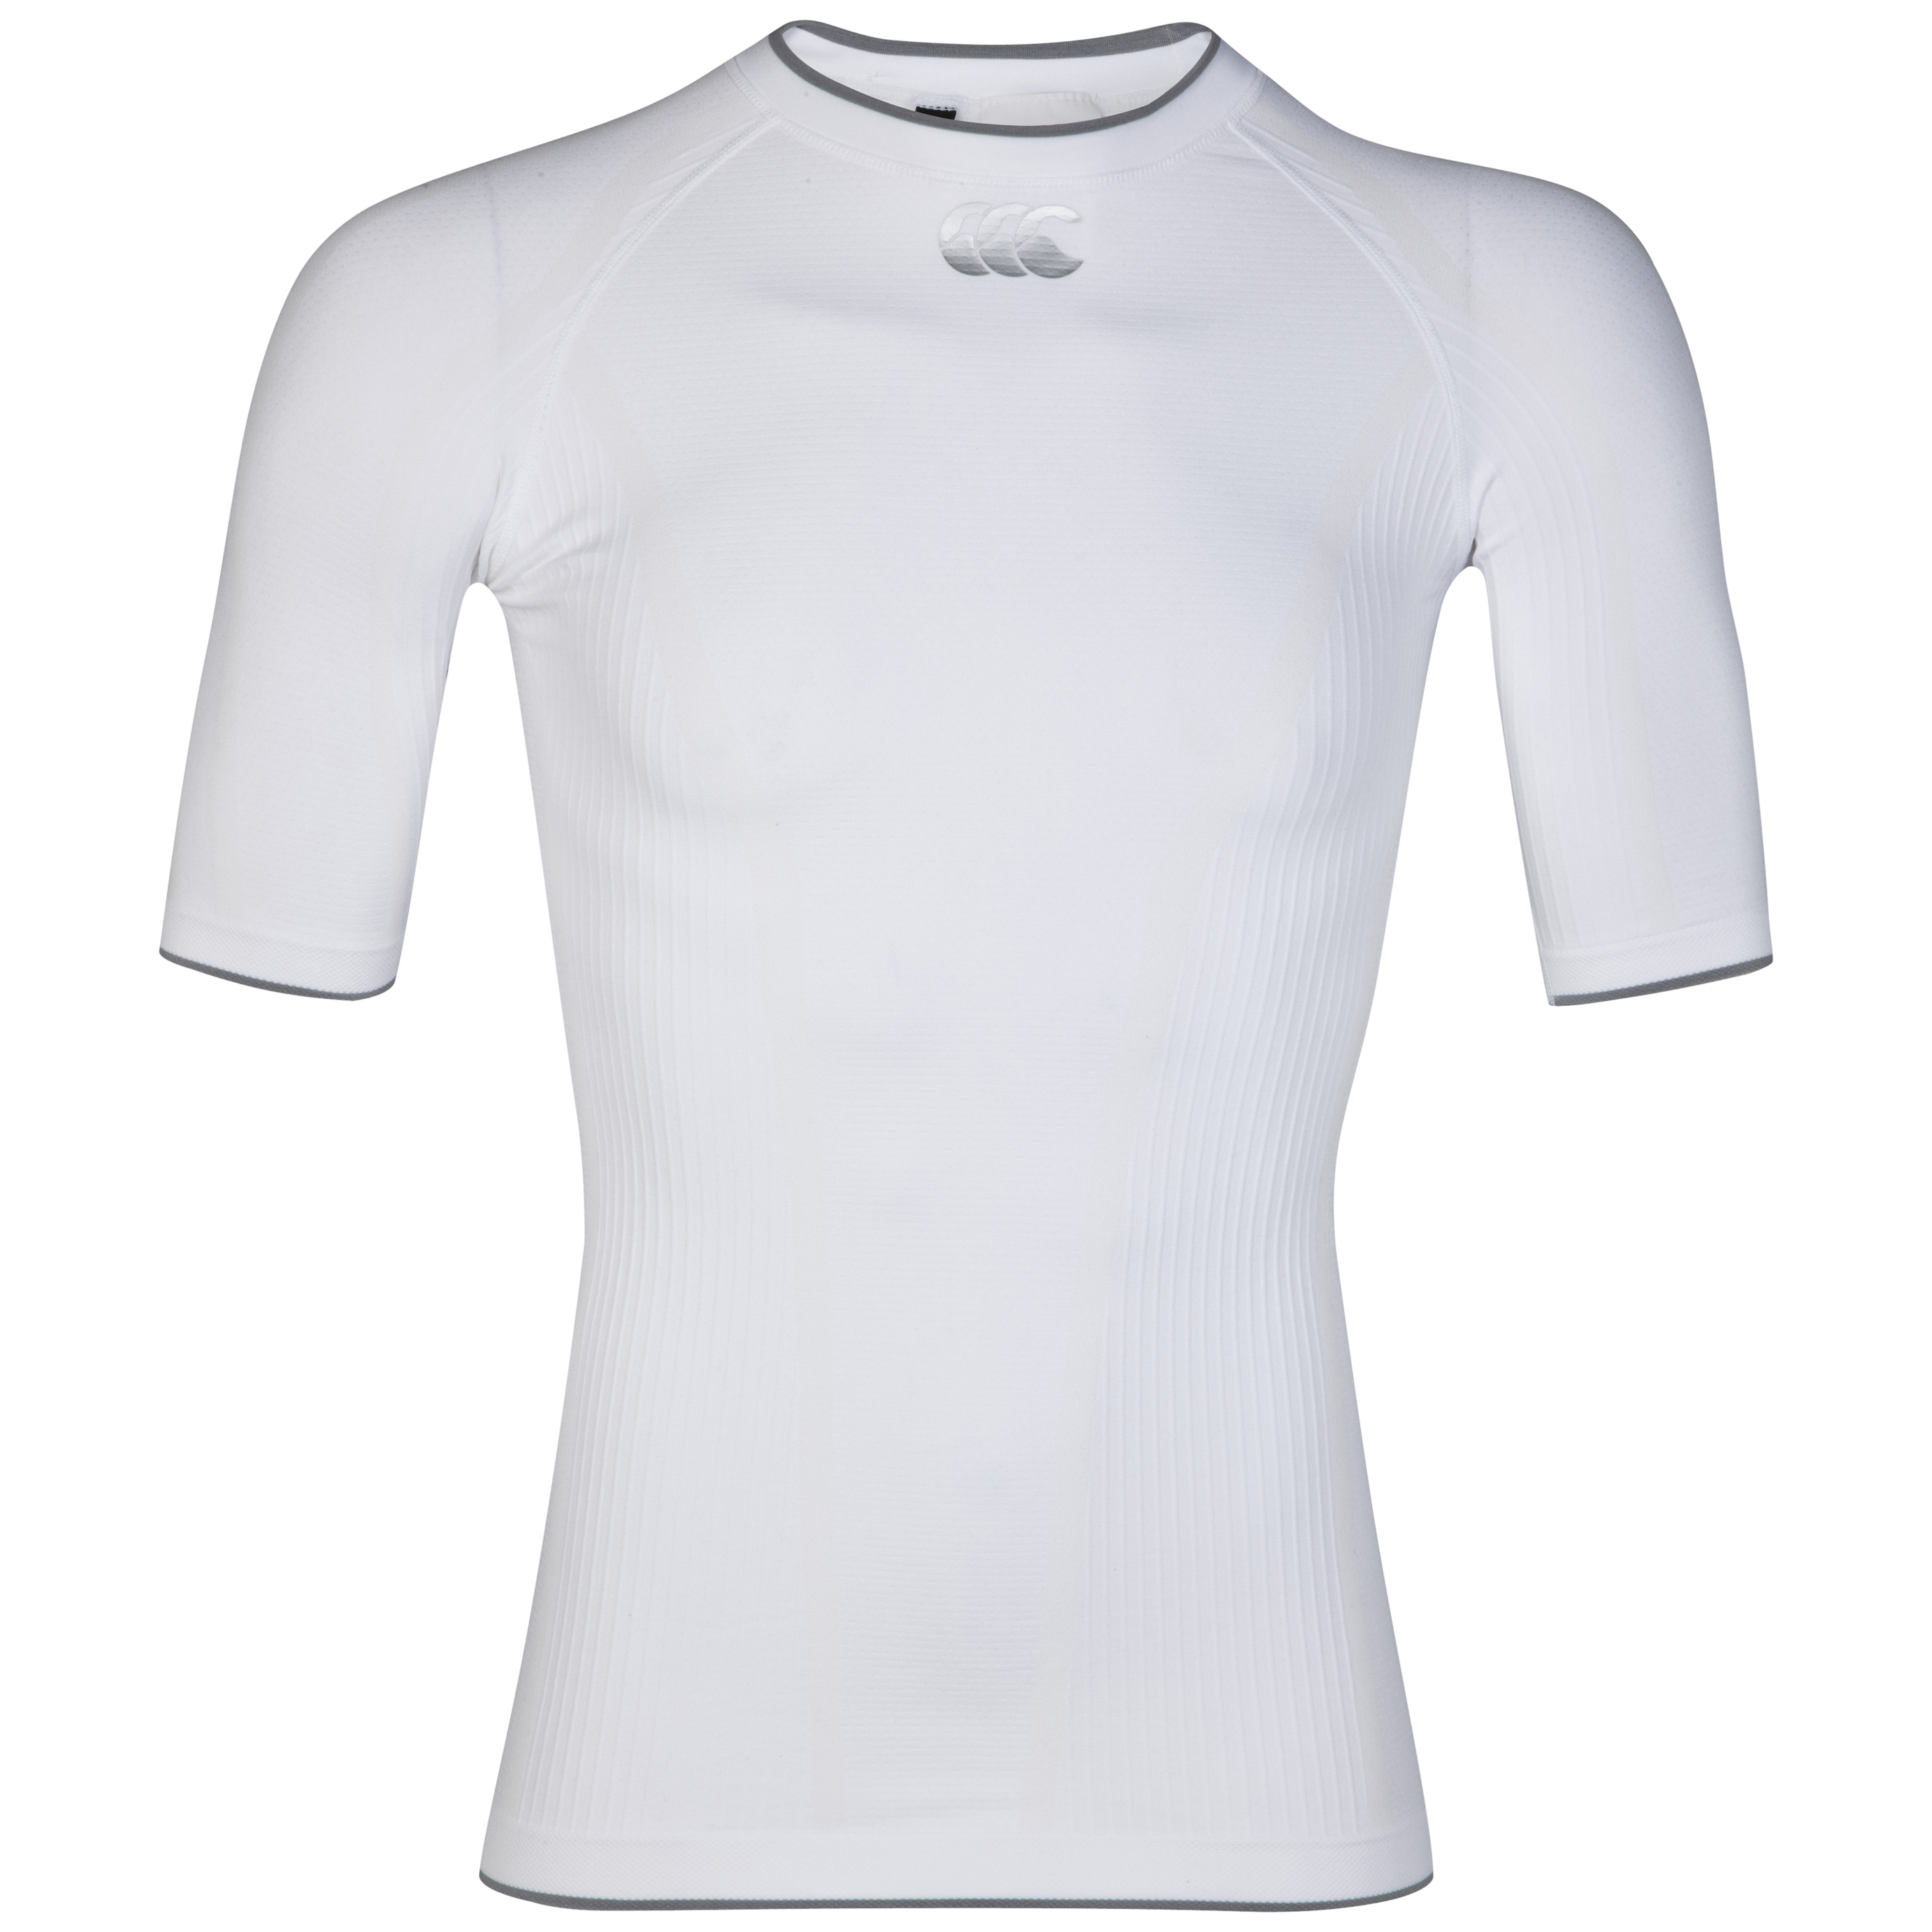 Canterbury iD Baselayer Top - Short Sleeve - White